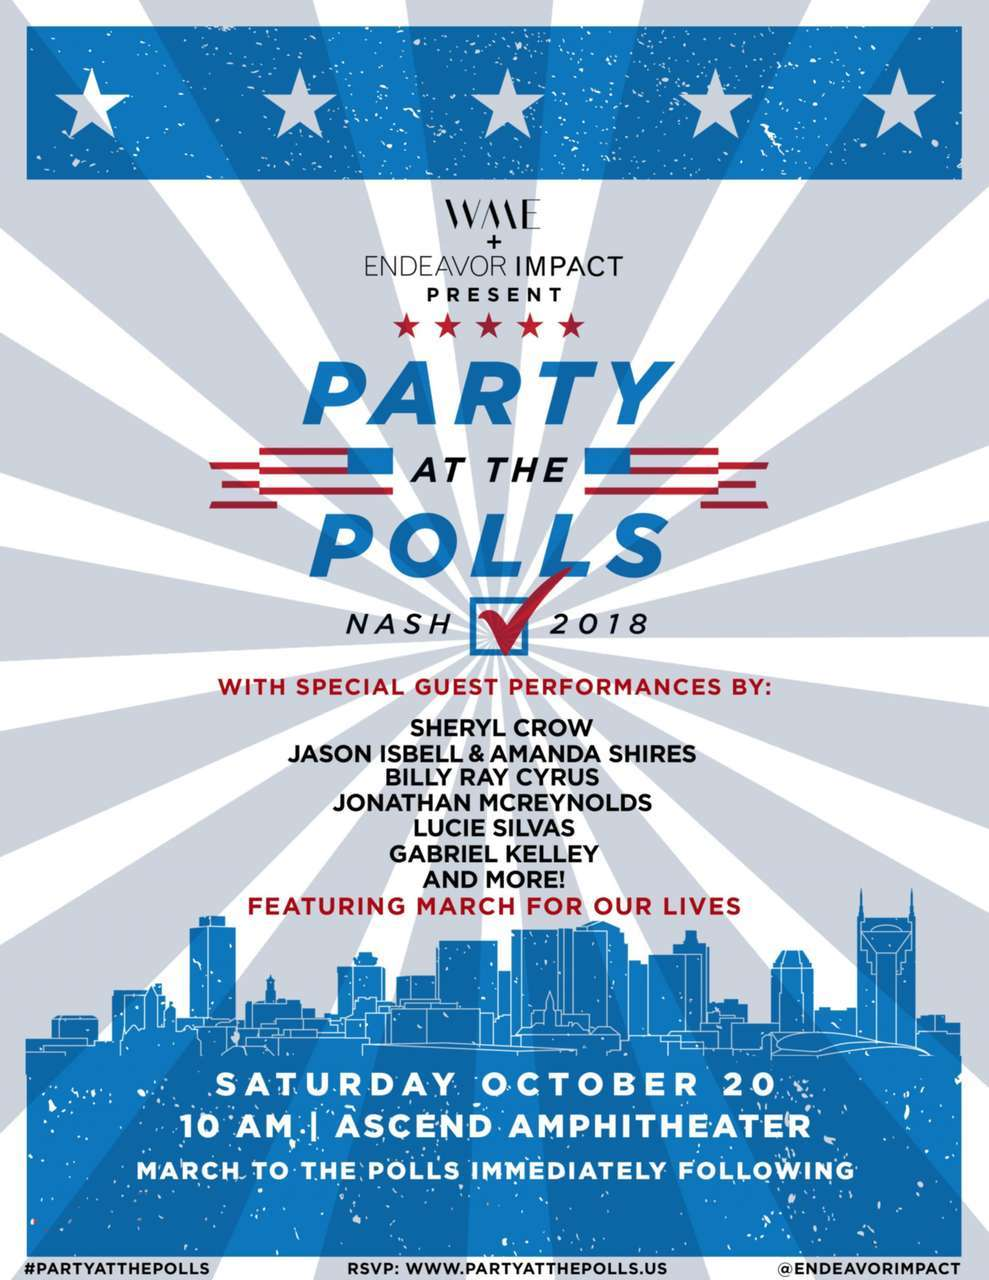 Billy Ray Cyrus Joins WME's 2018 'Party At The Polls' In Nashville